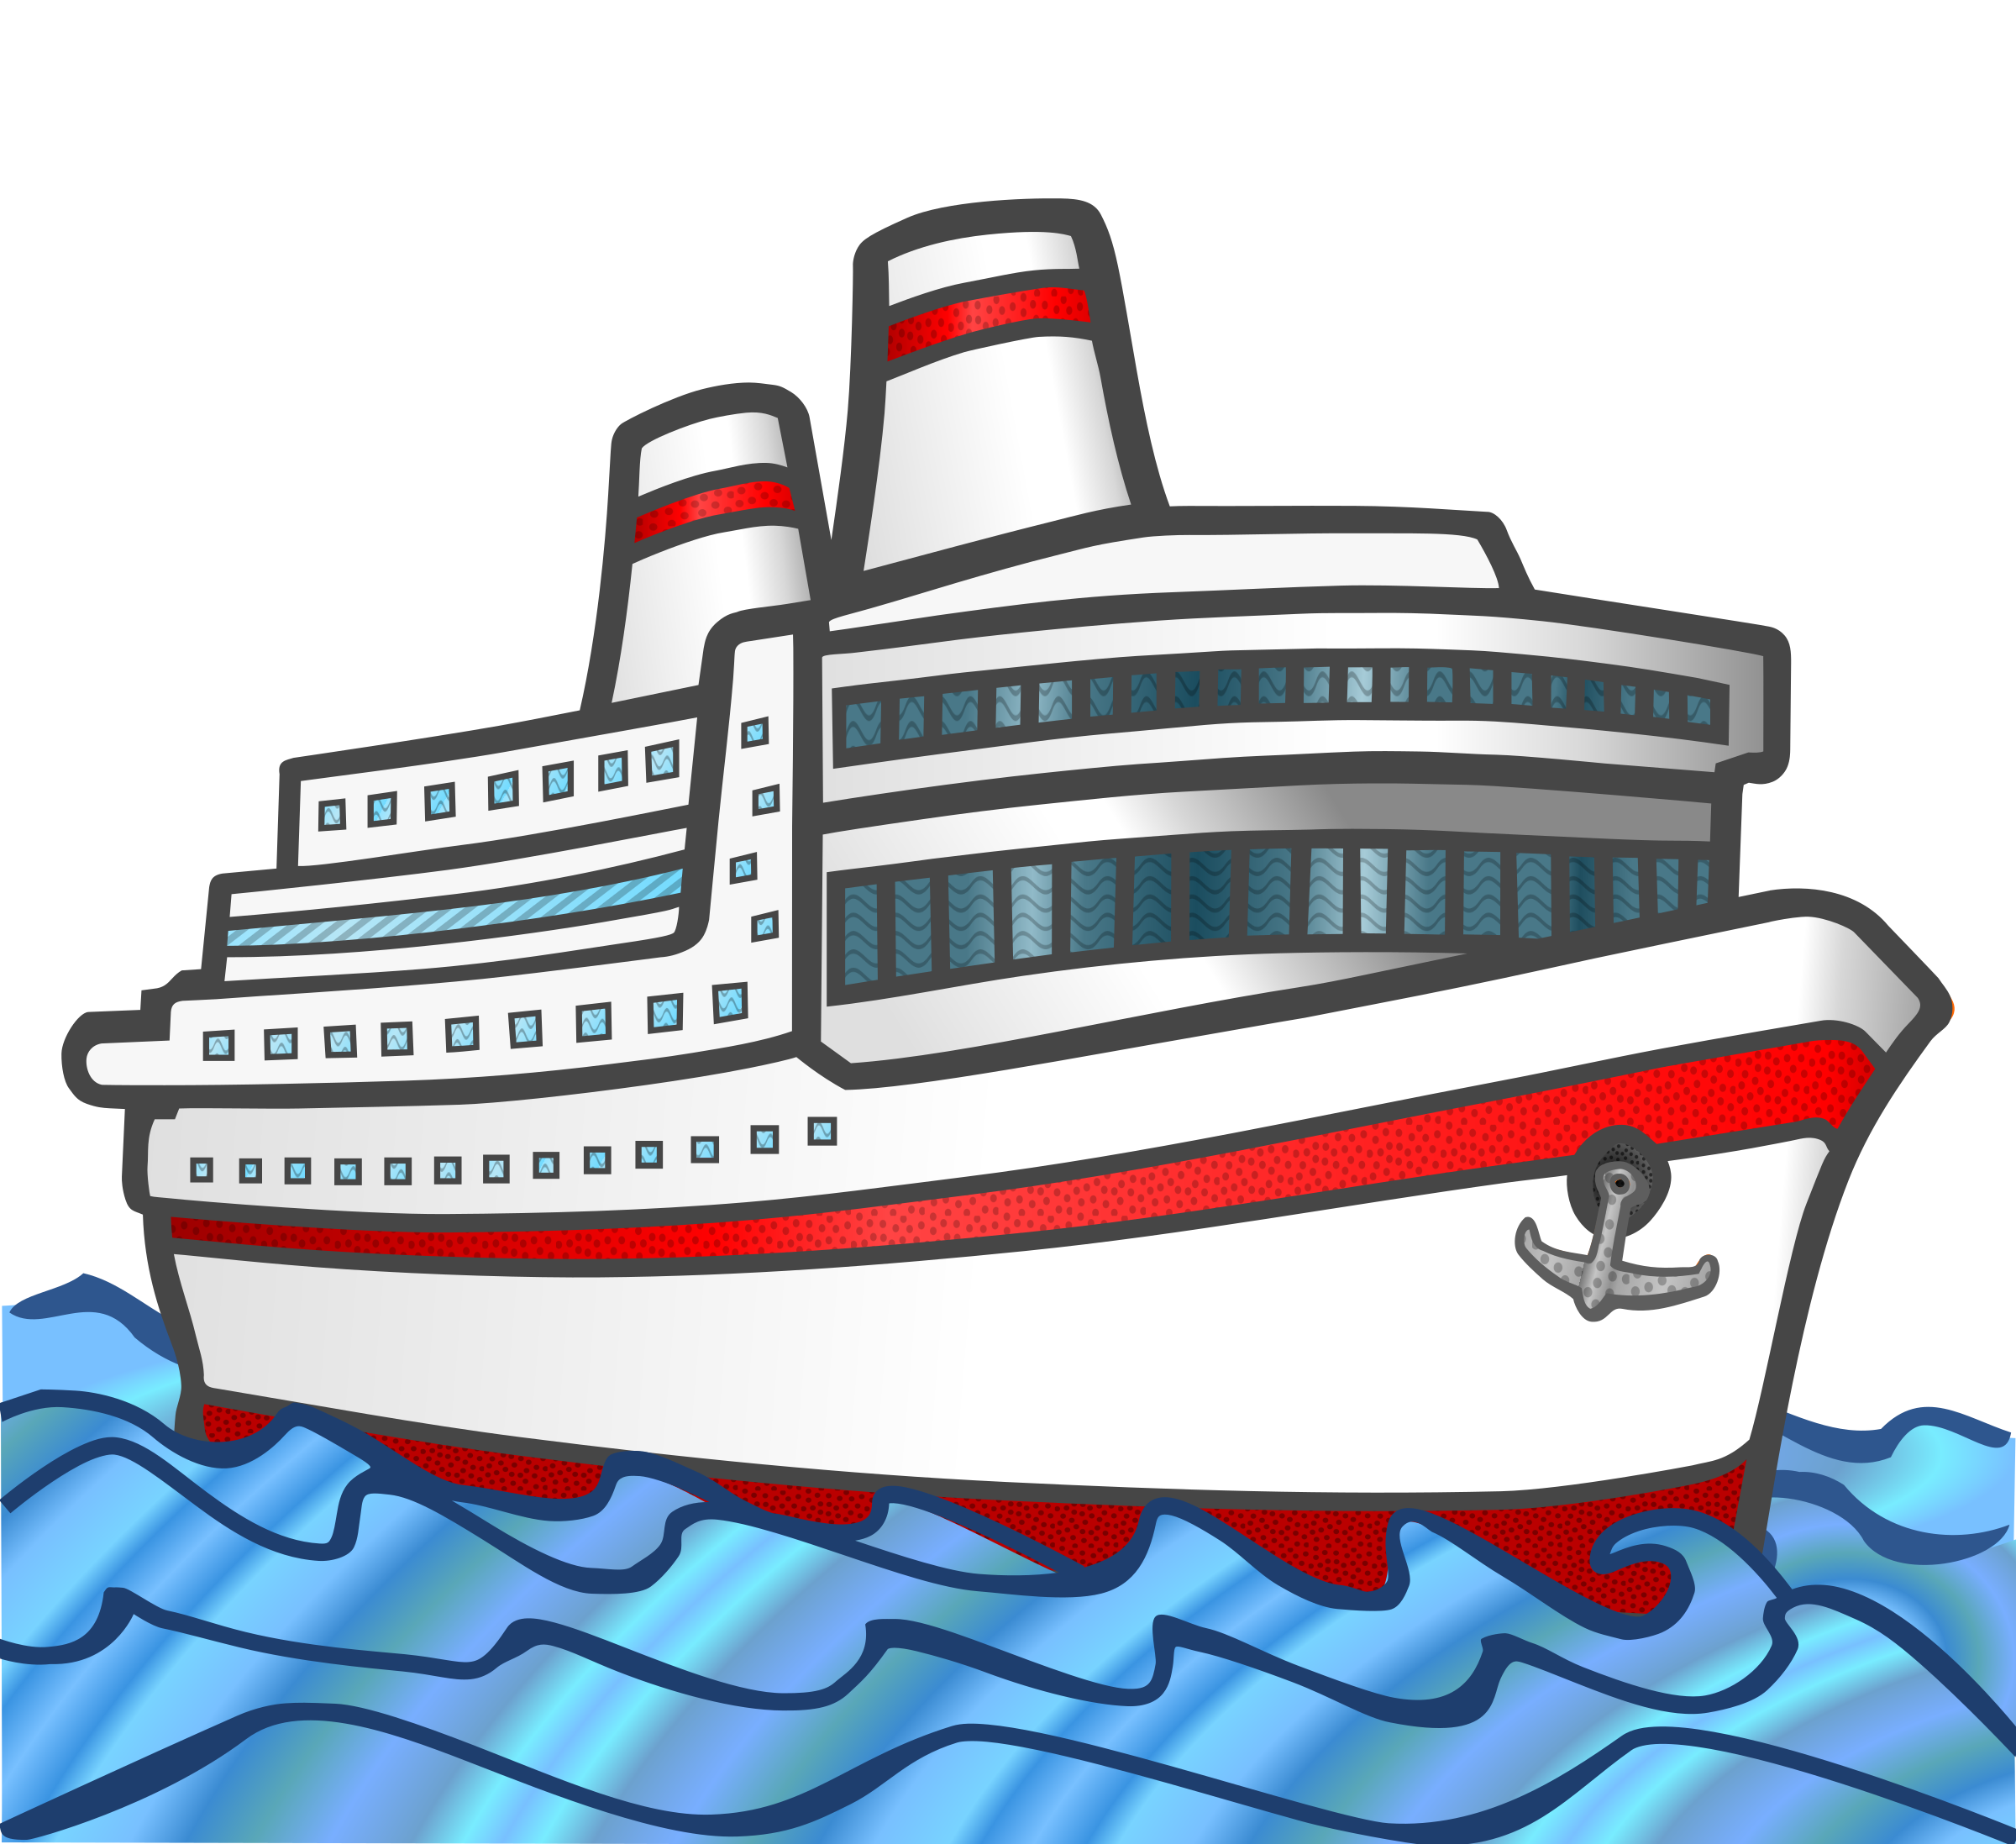 Ship clipart #4, Download drawings